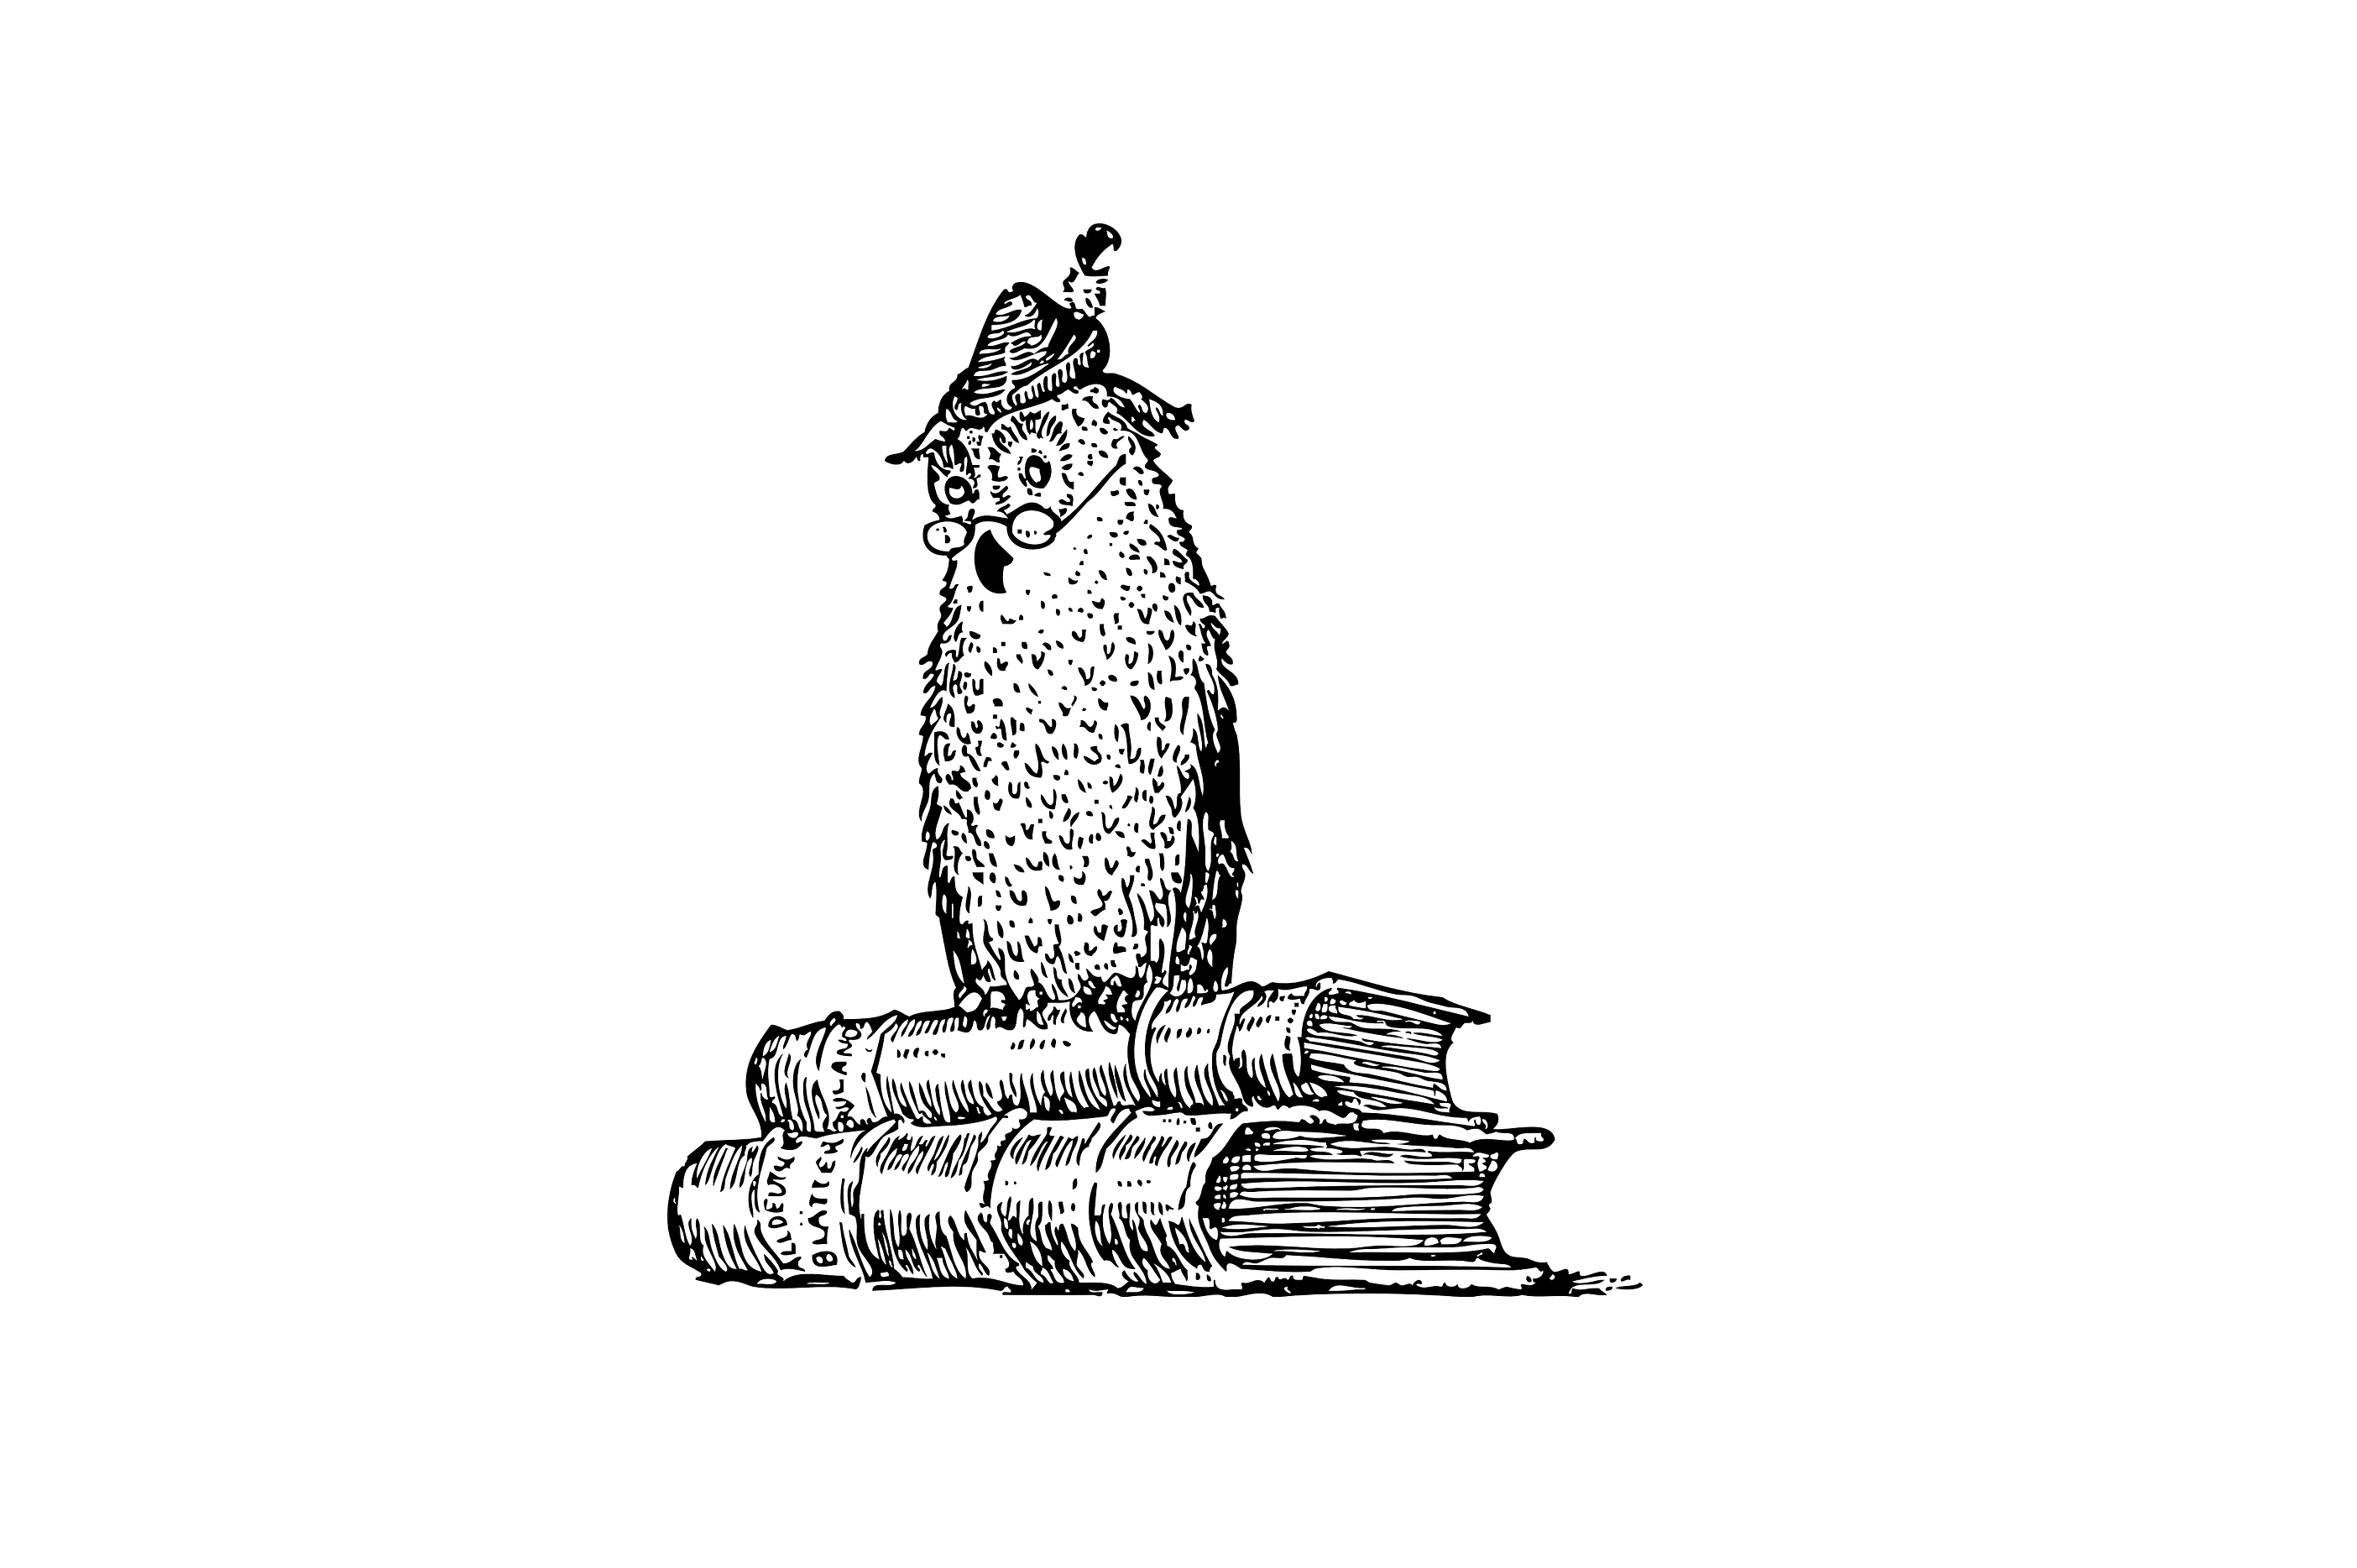 Graphic of owl on books